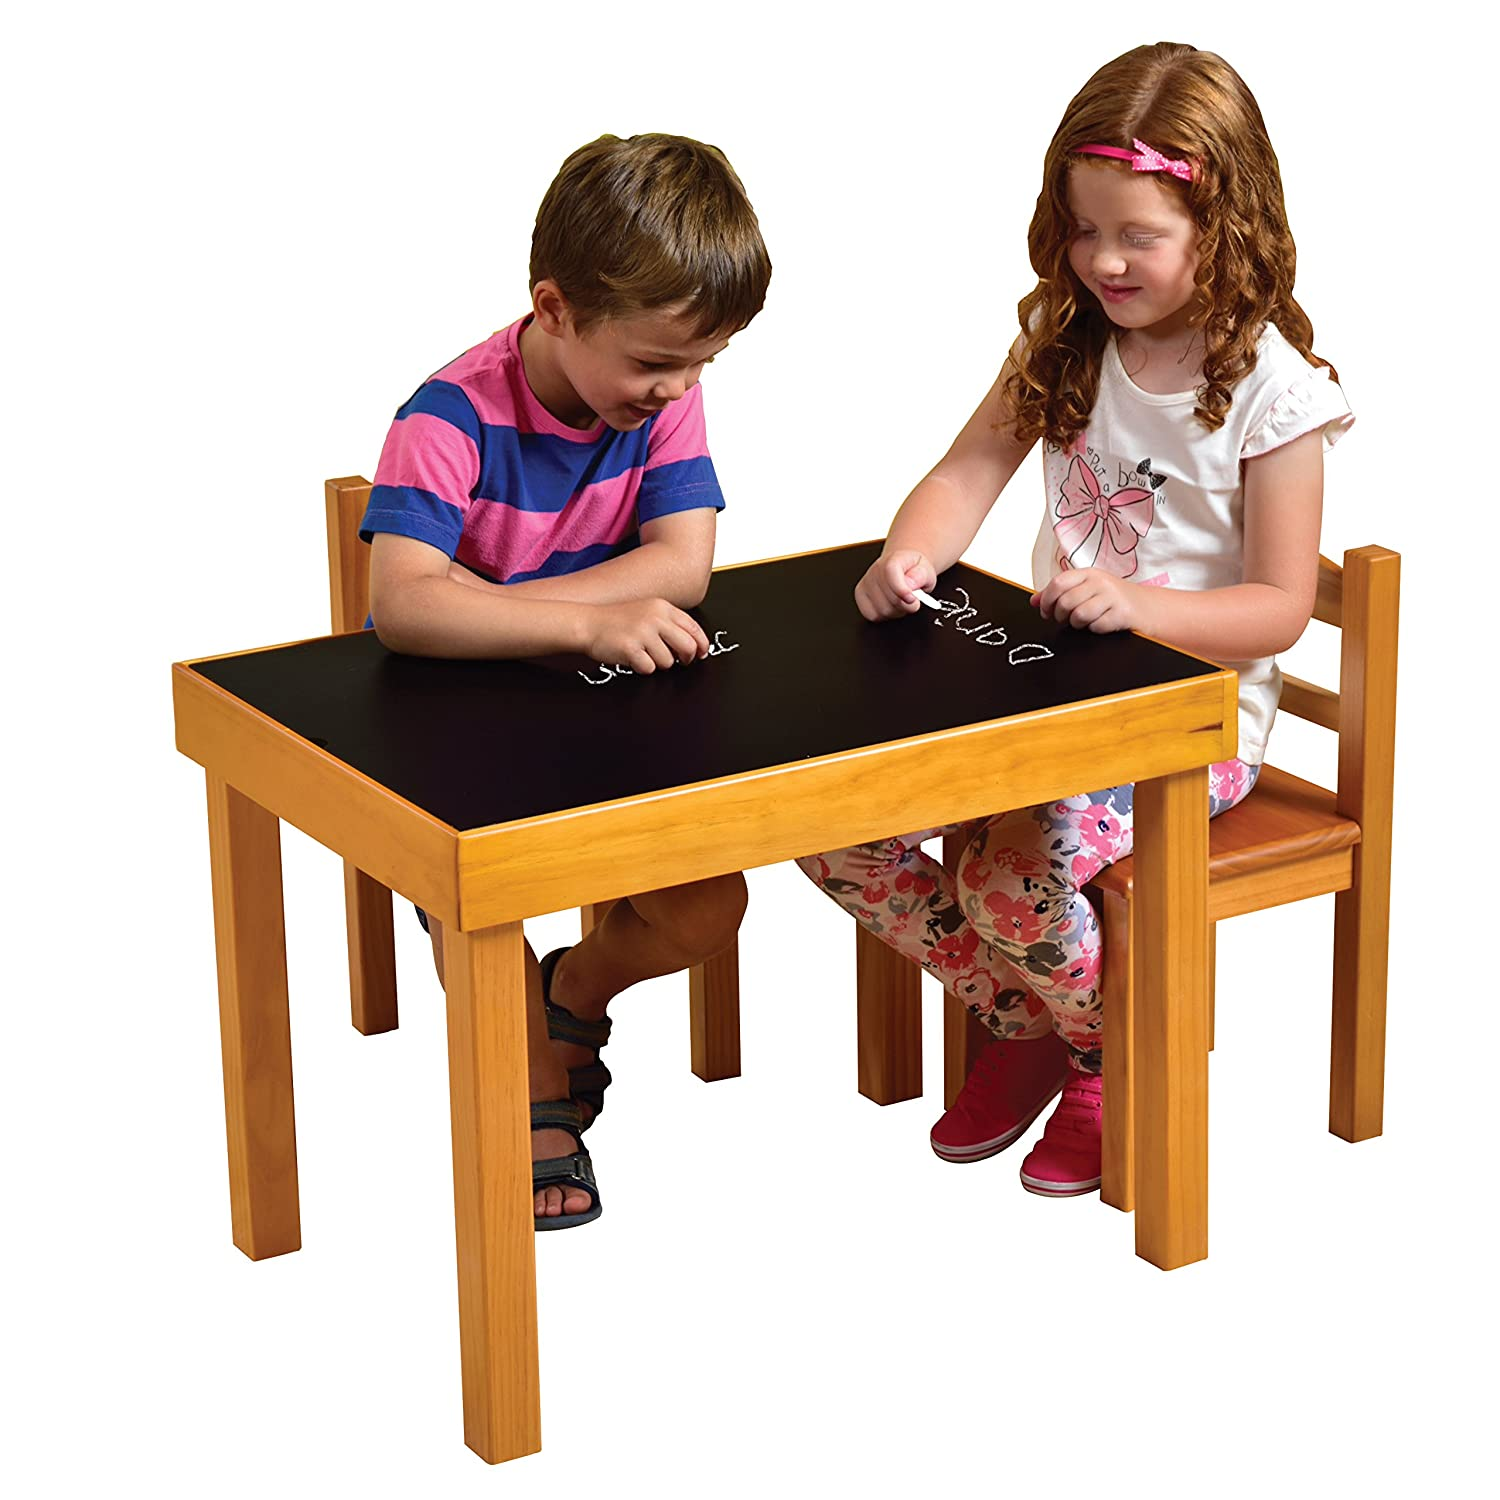 Liberty House Toys Multi Purpose Wooden Table And Chairs Set: Amazon.co.uk:  Toys U0026 Games